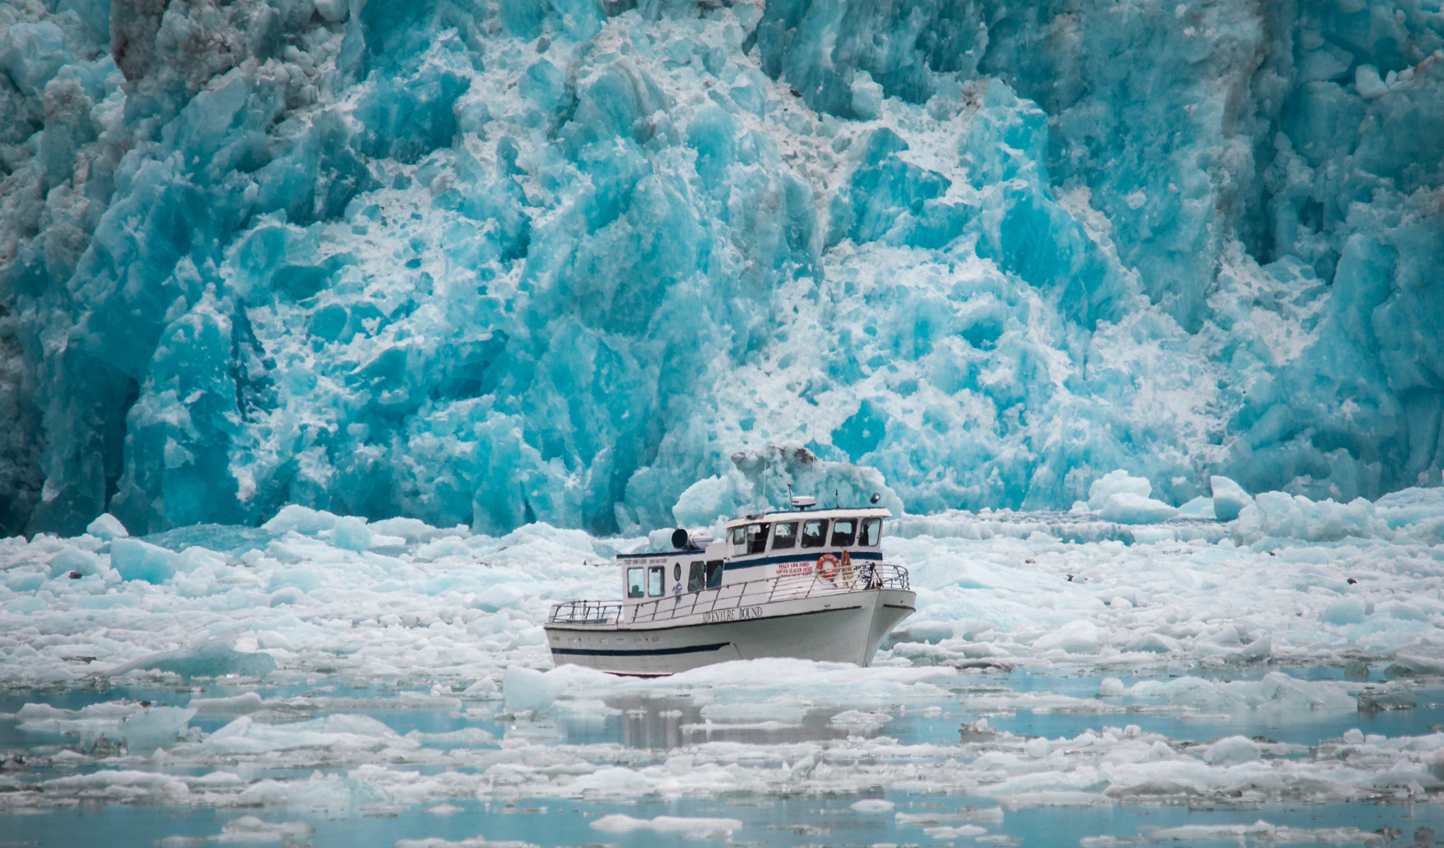 Dine on-board your boat while enjoying Eqi Glacier